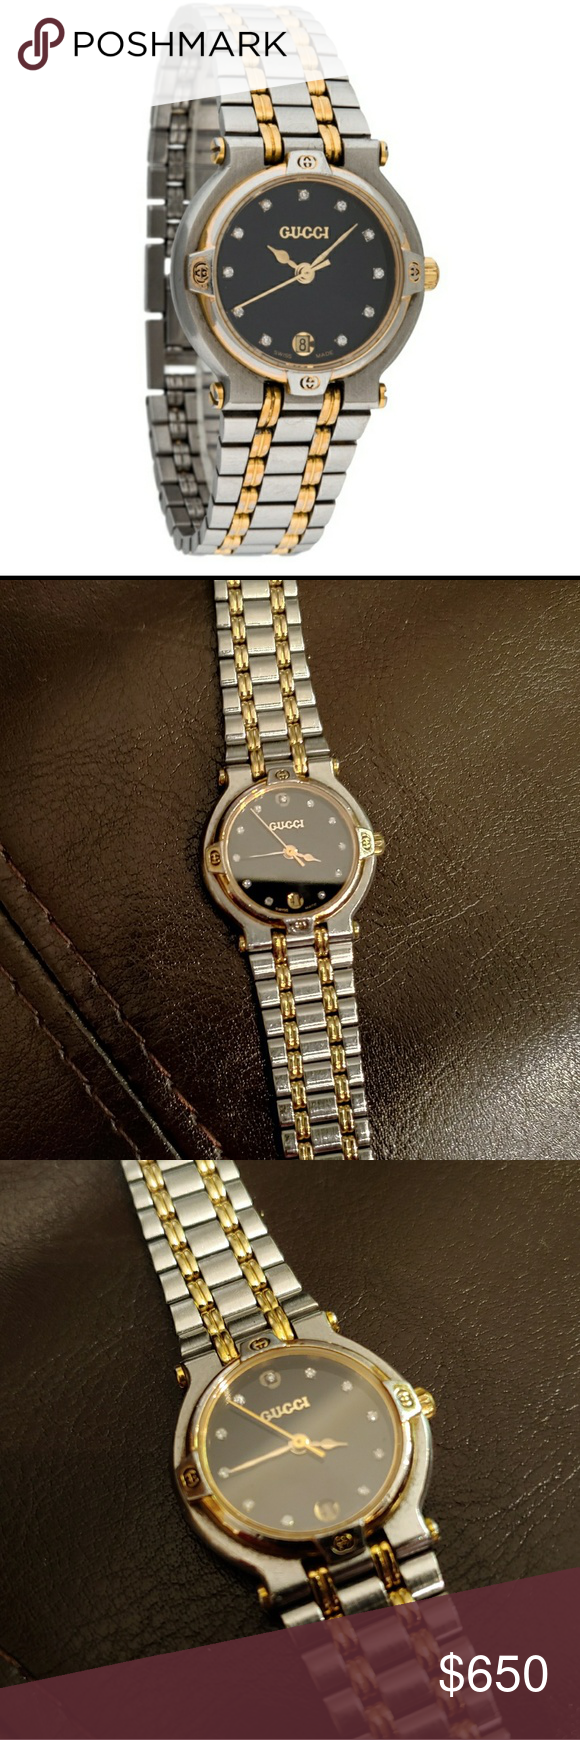 2014ec21285 Gucci 9000L Watch Ladies  gold-tone and stainless steel 26mm Gucci Two-Tone